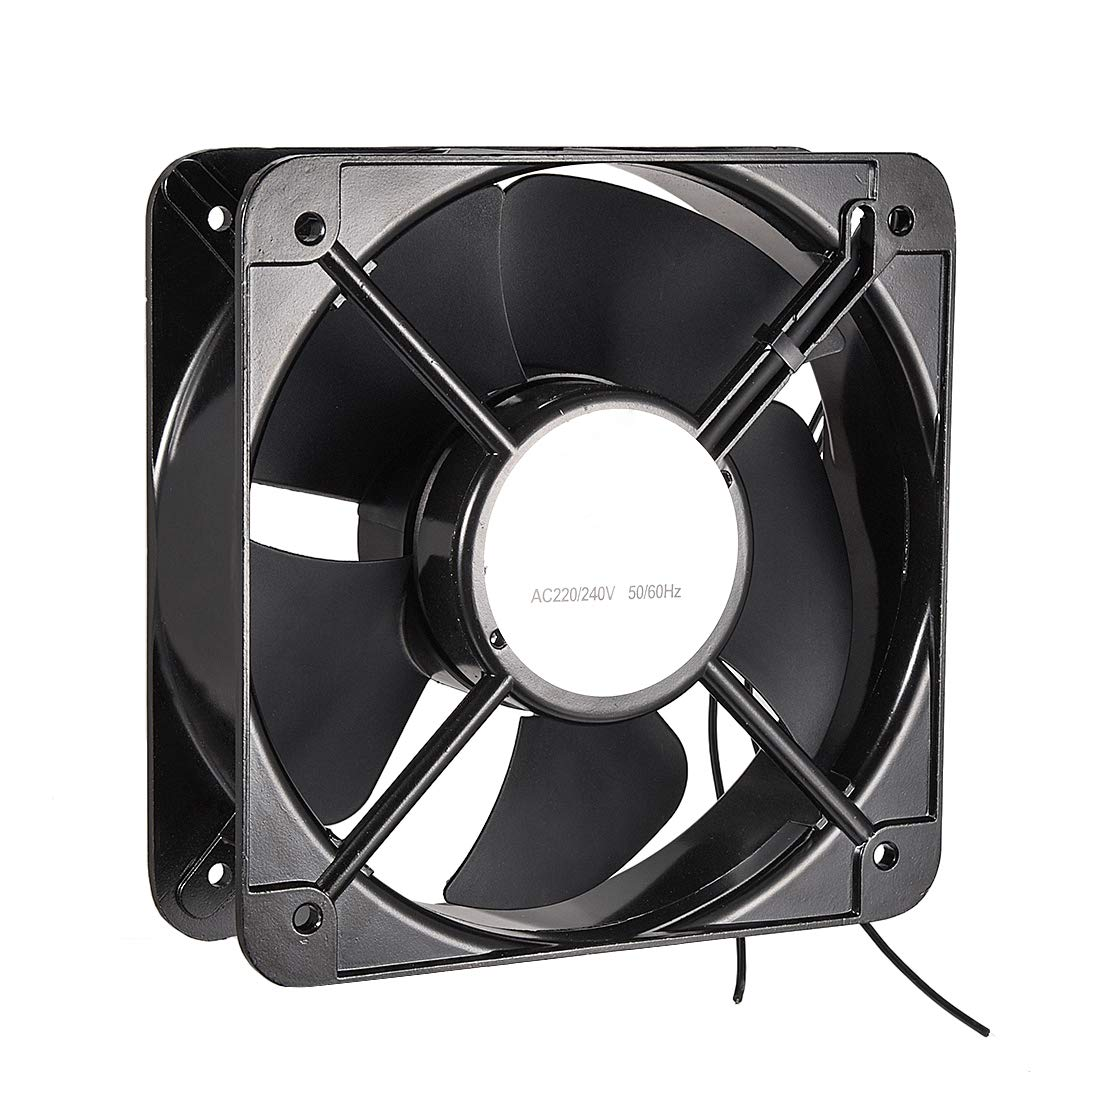 uxcell Cooling Fan 200mm x 200mm x 60mm FP-20060EX-S1-B AC 220V/240V 0.45A Dual Ball Bearings